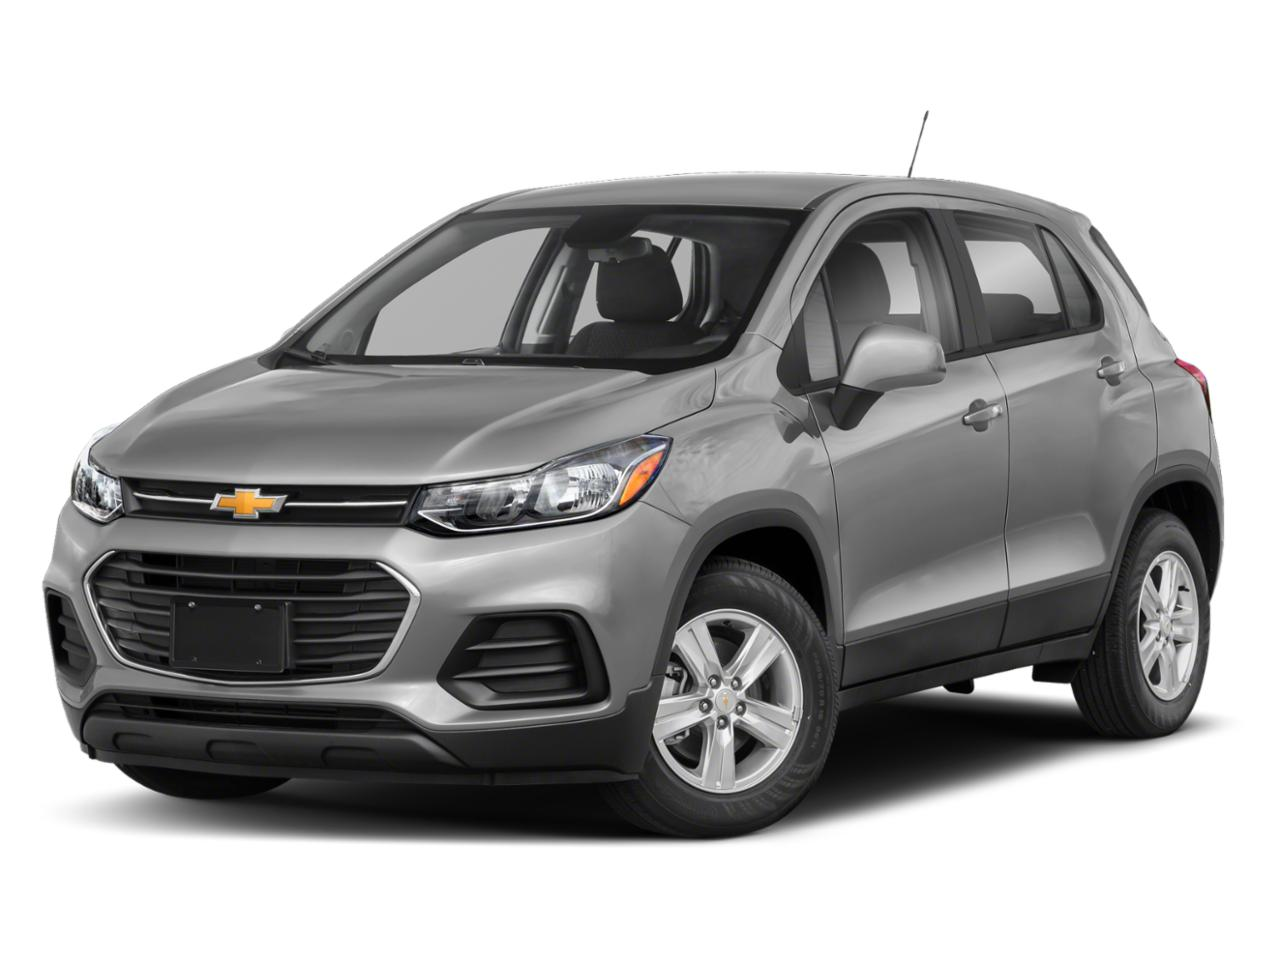 2020 Chevrolet Trax Vehicle Photo in Plainfield, IL 60586